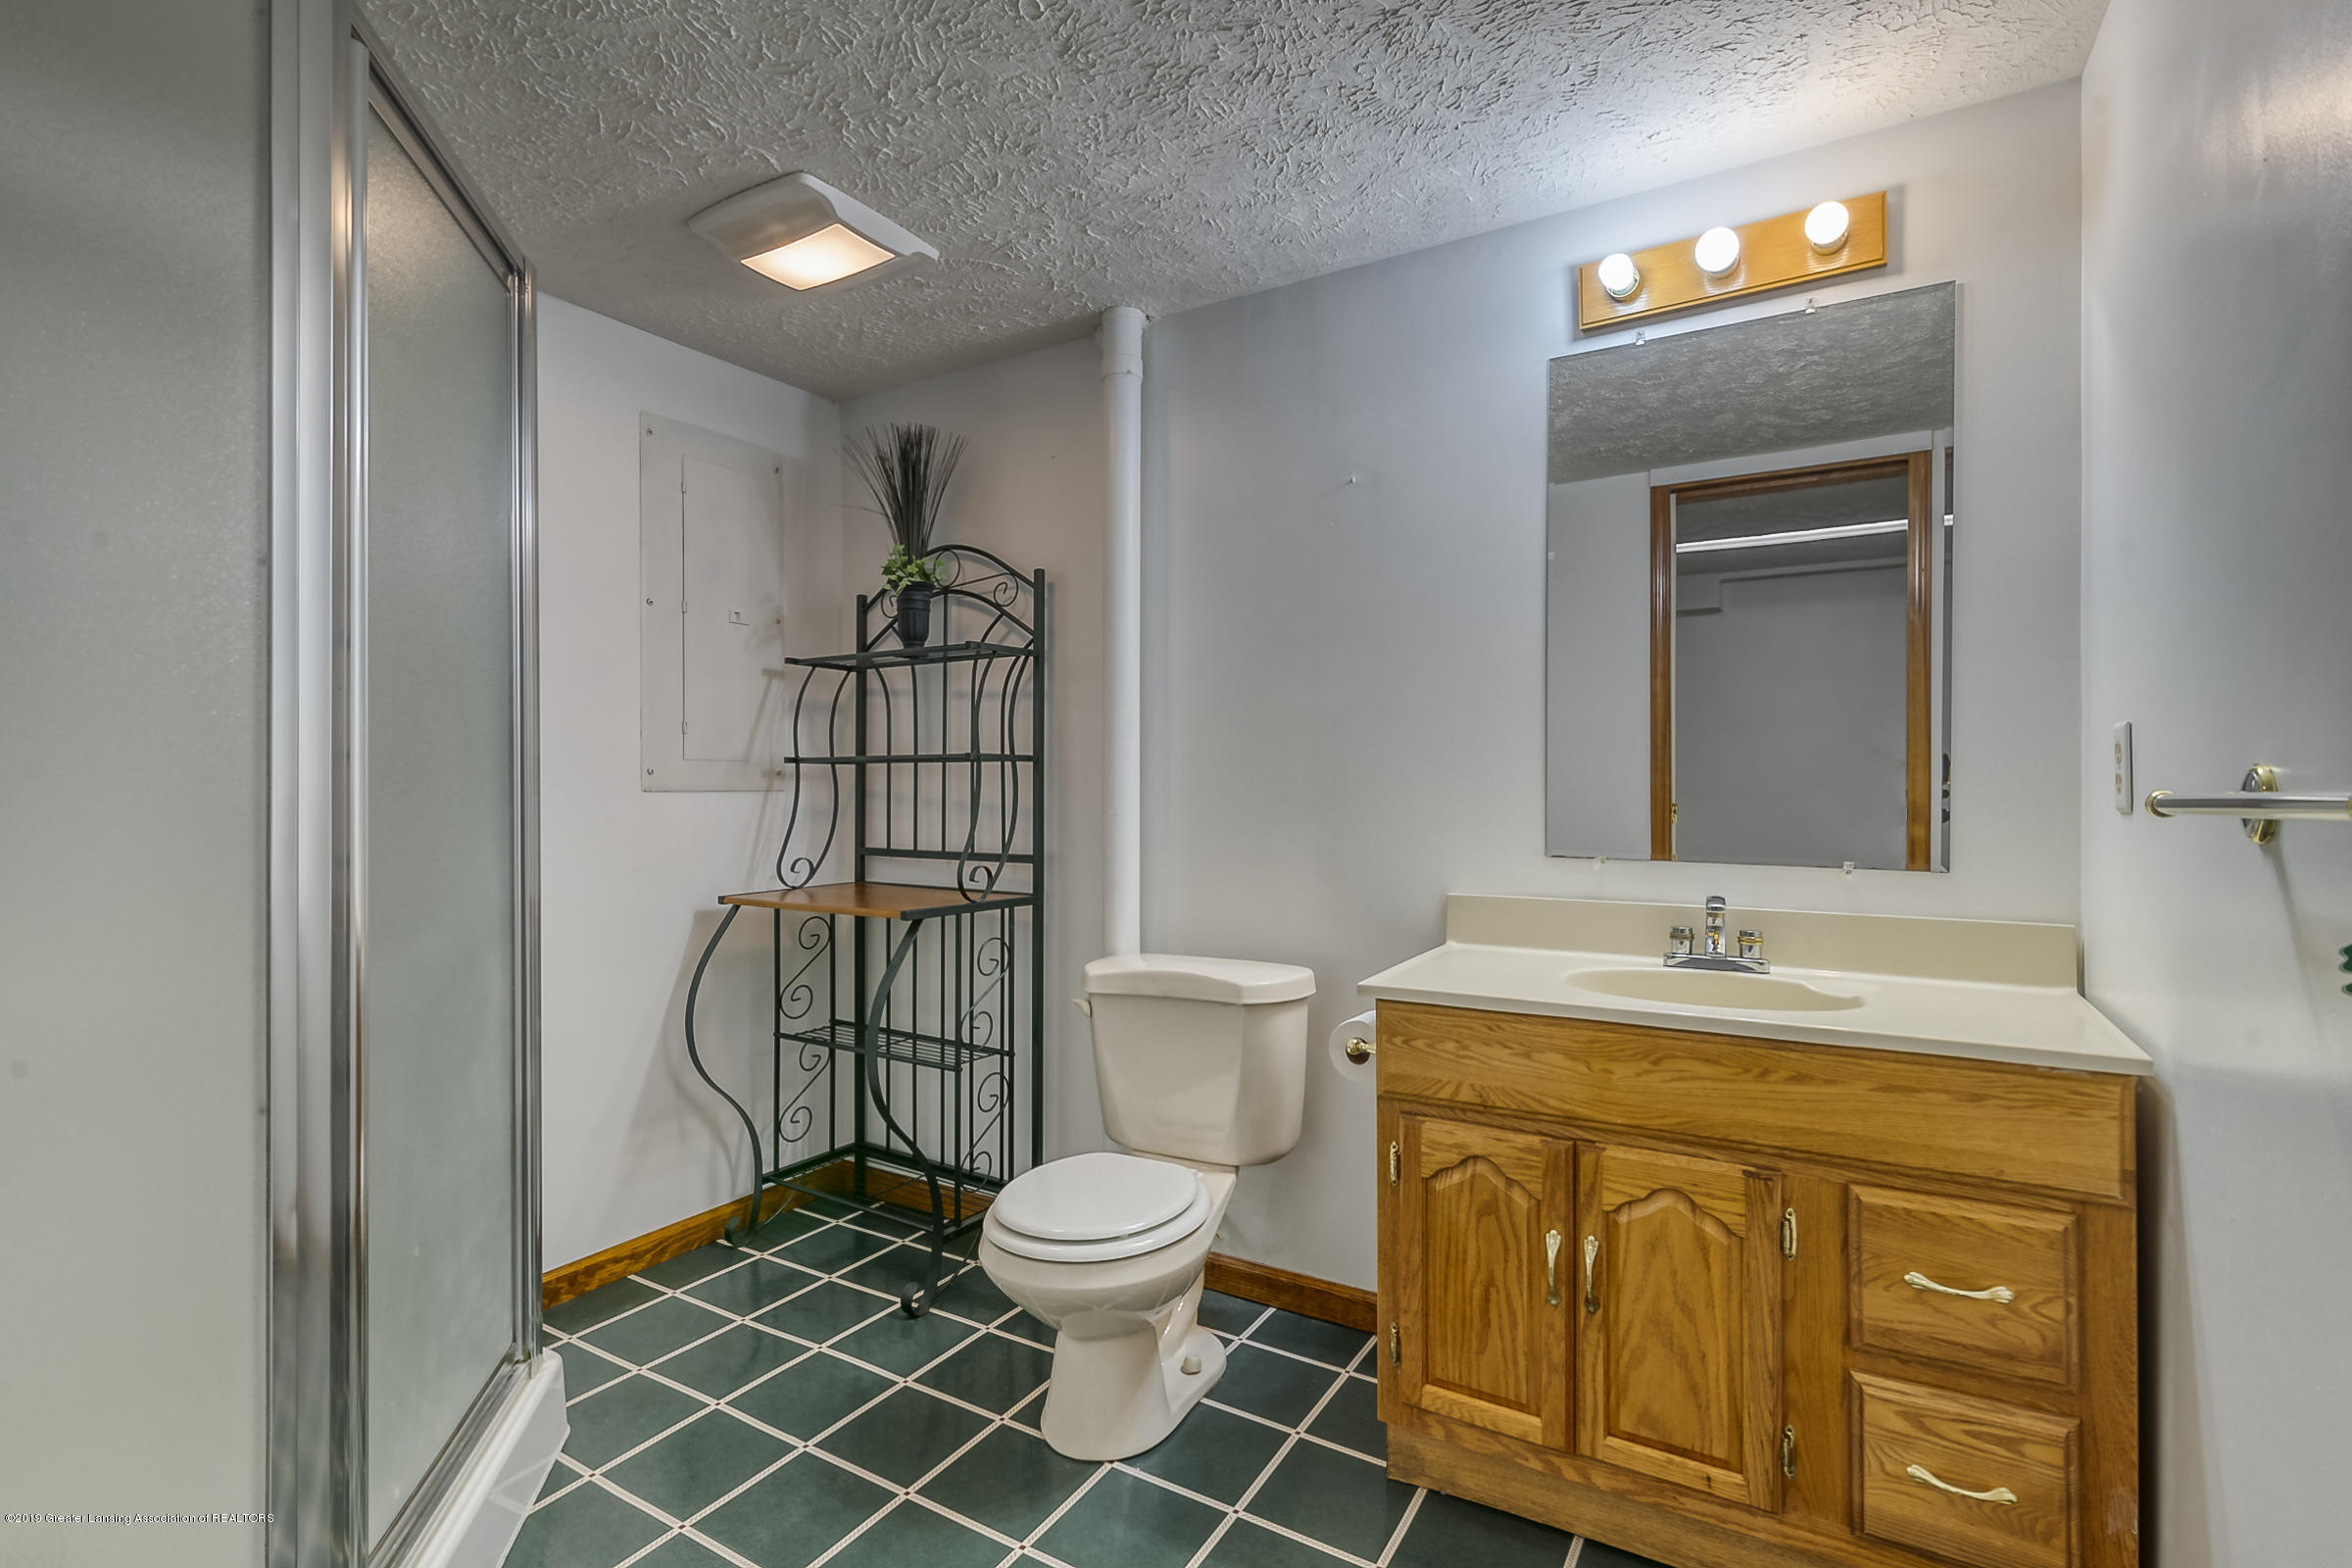 2343 Chisholm Ct - 3RD BATHROOM - 34